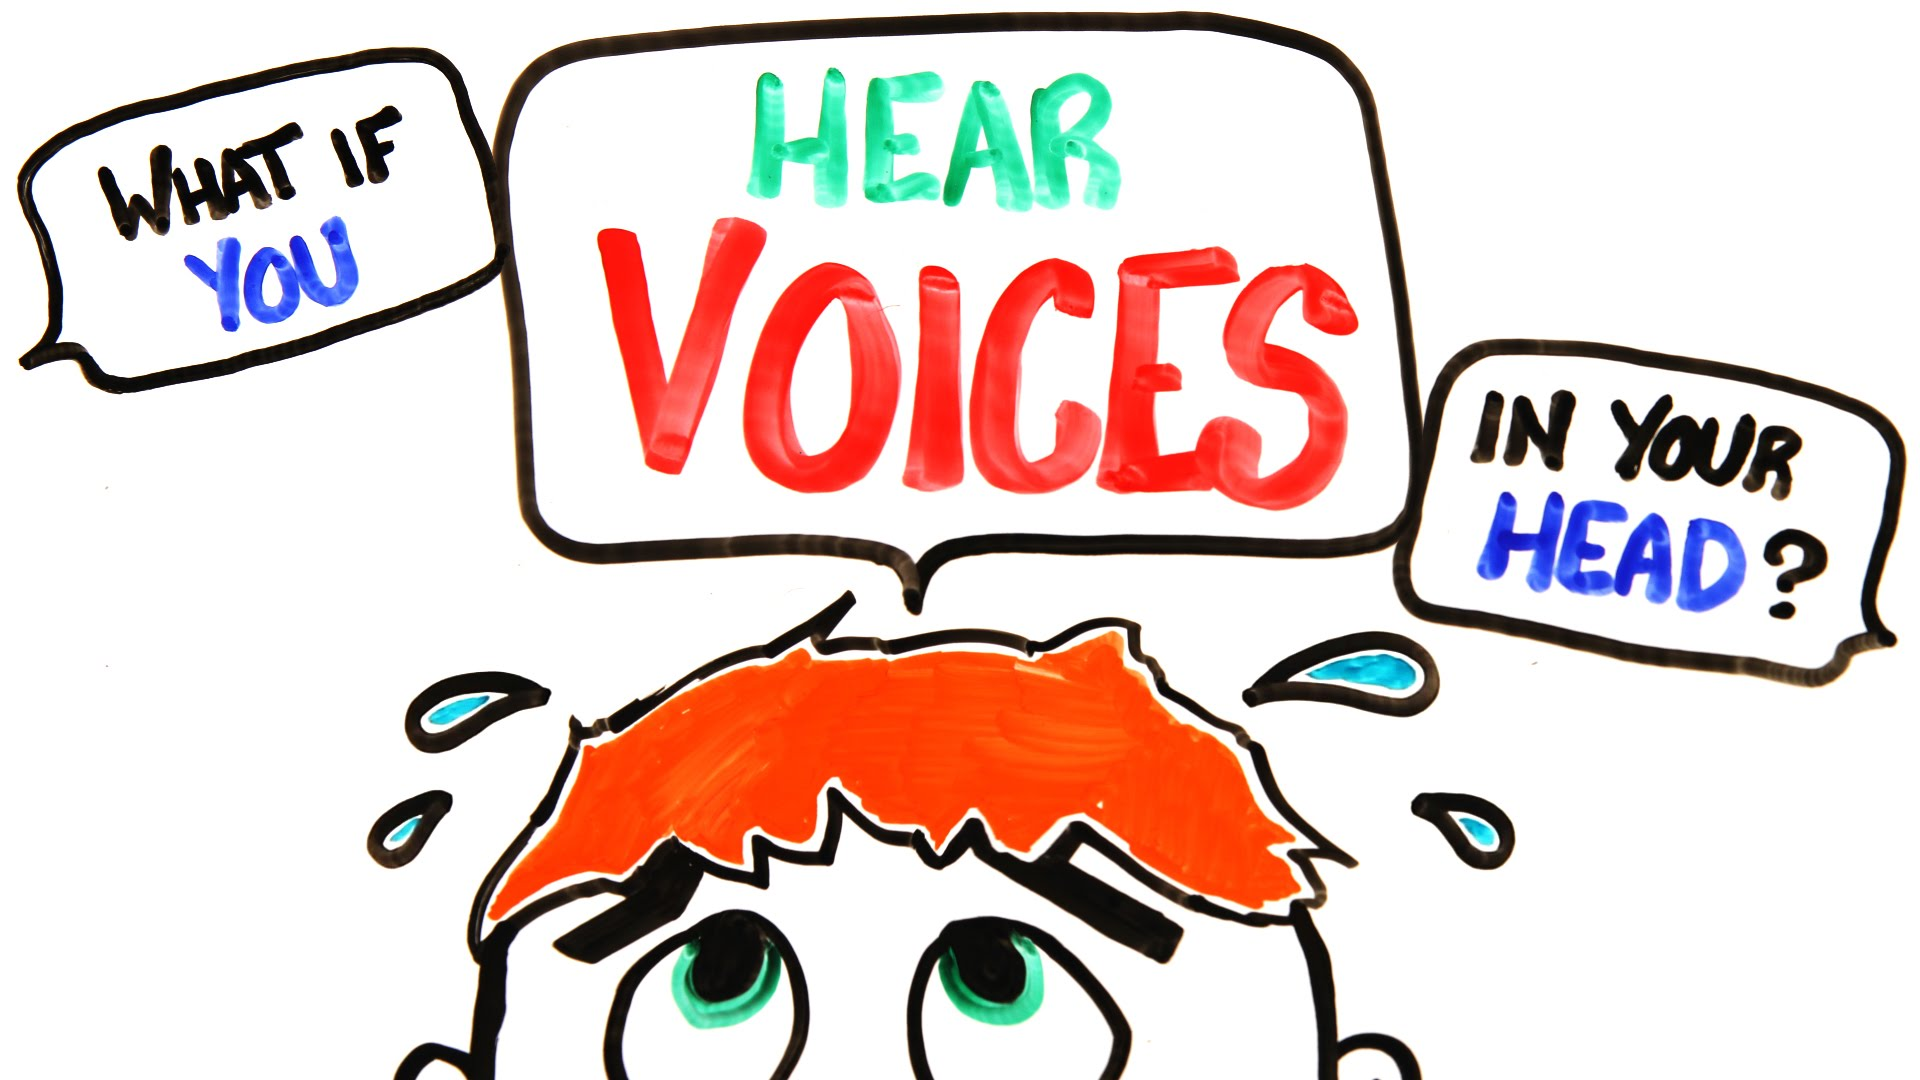 Hearing clipart hearing voice. What if you hear